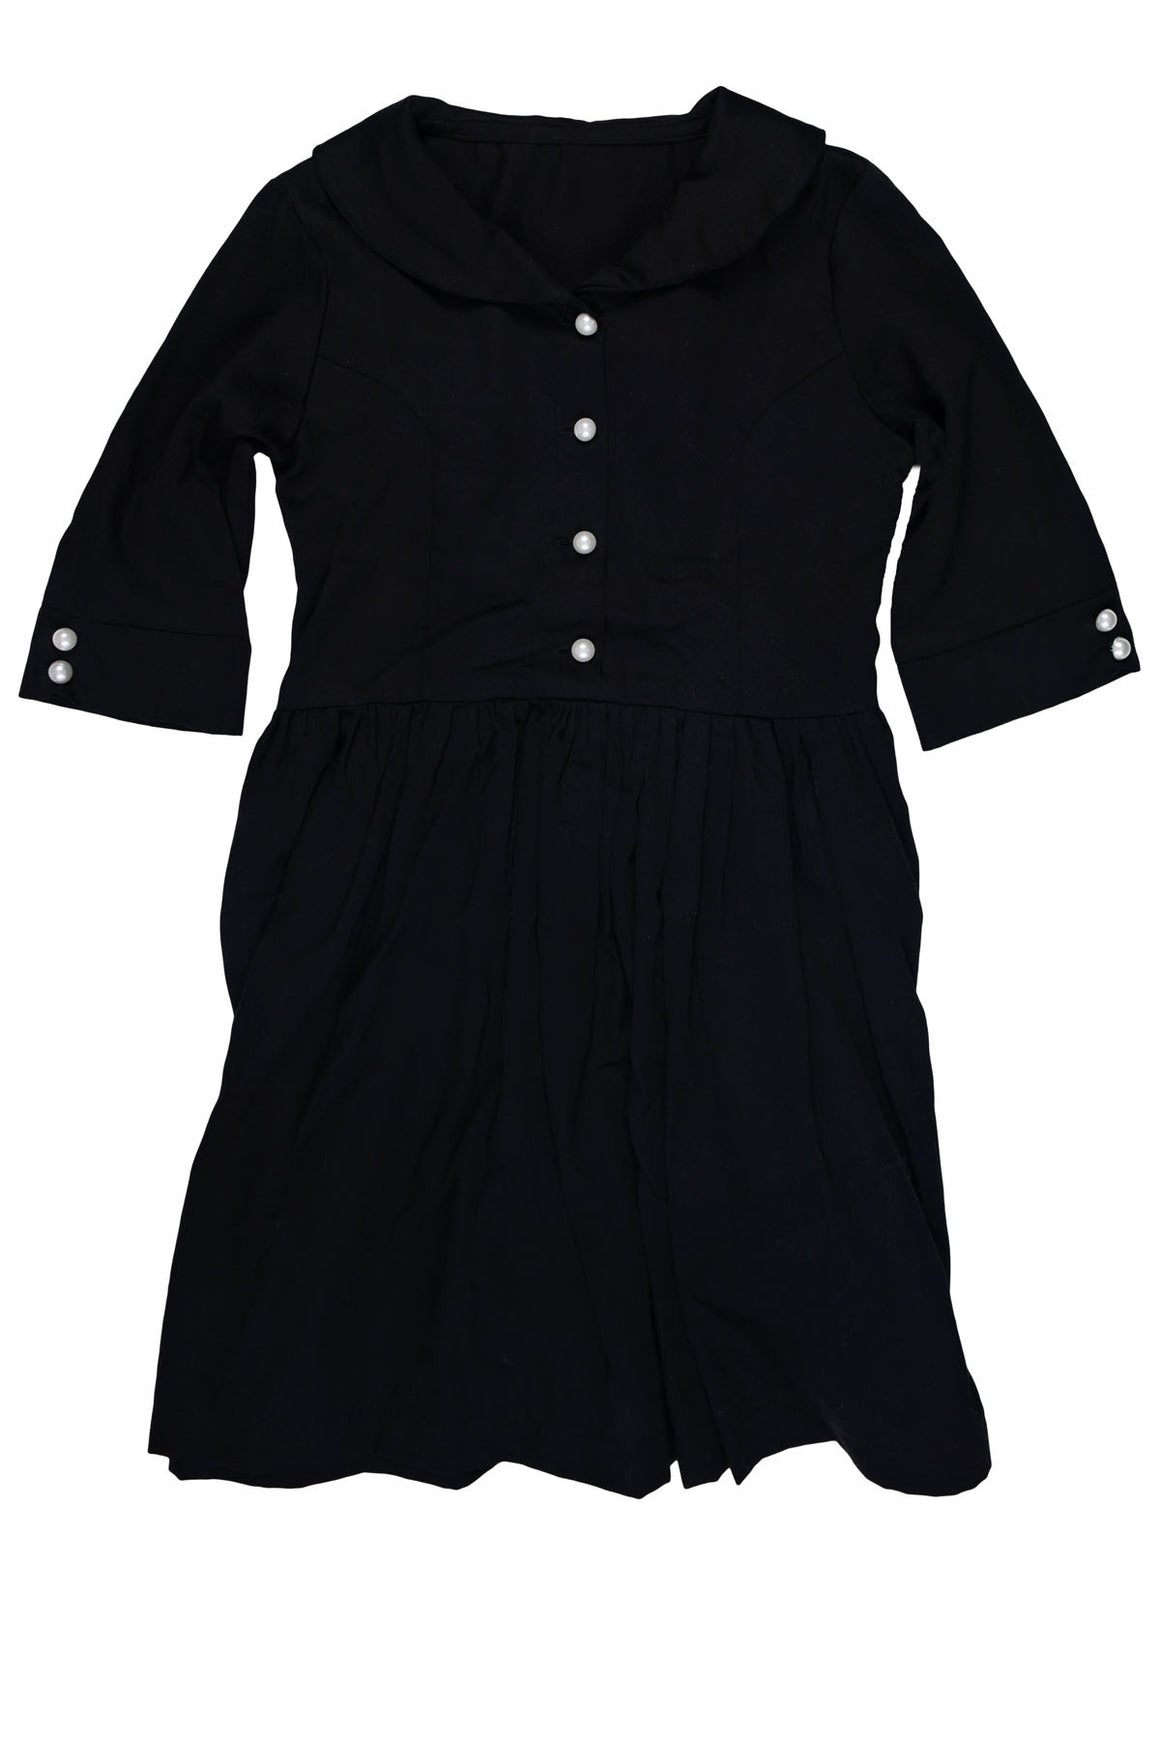 Elena Dress- Black- Sample